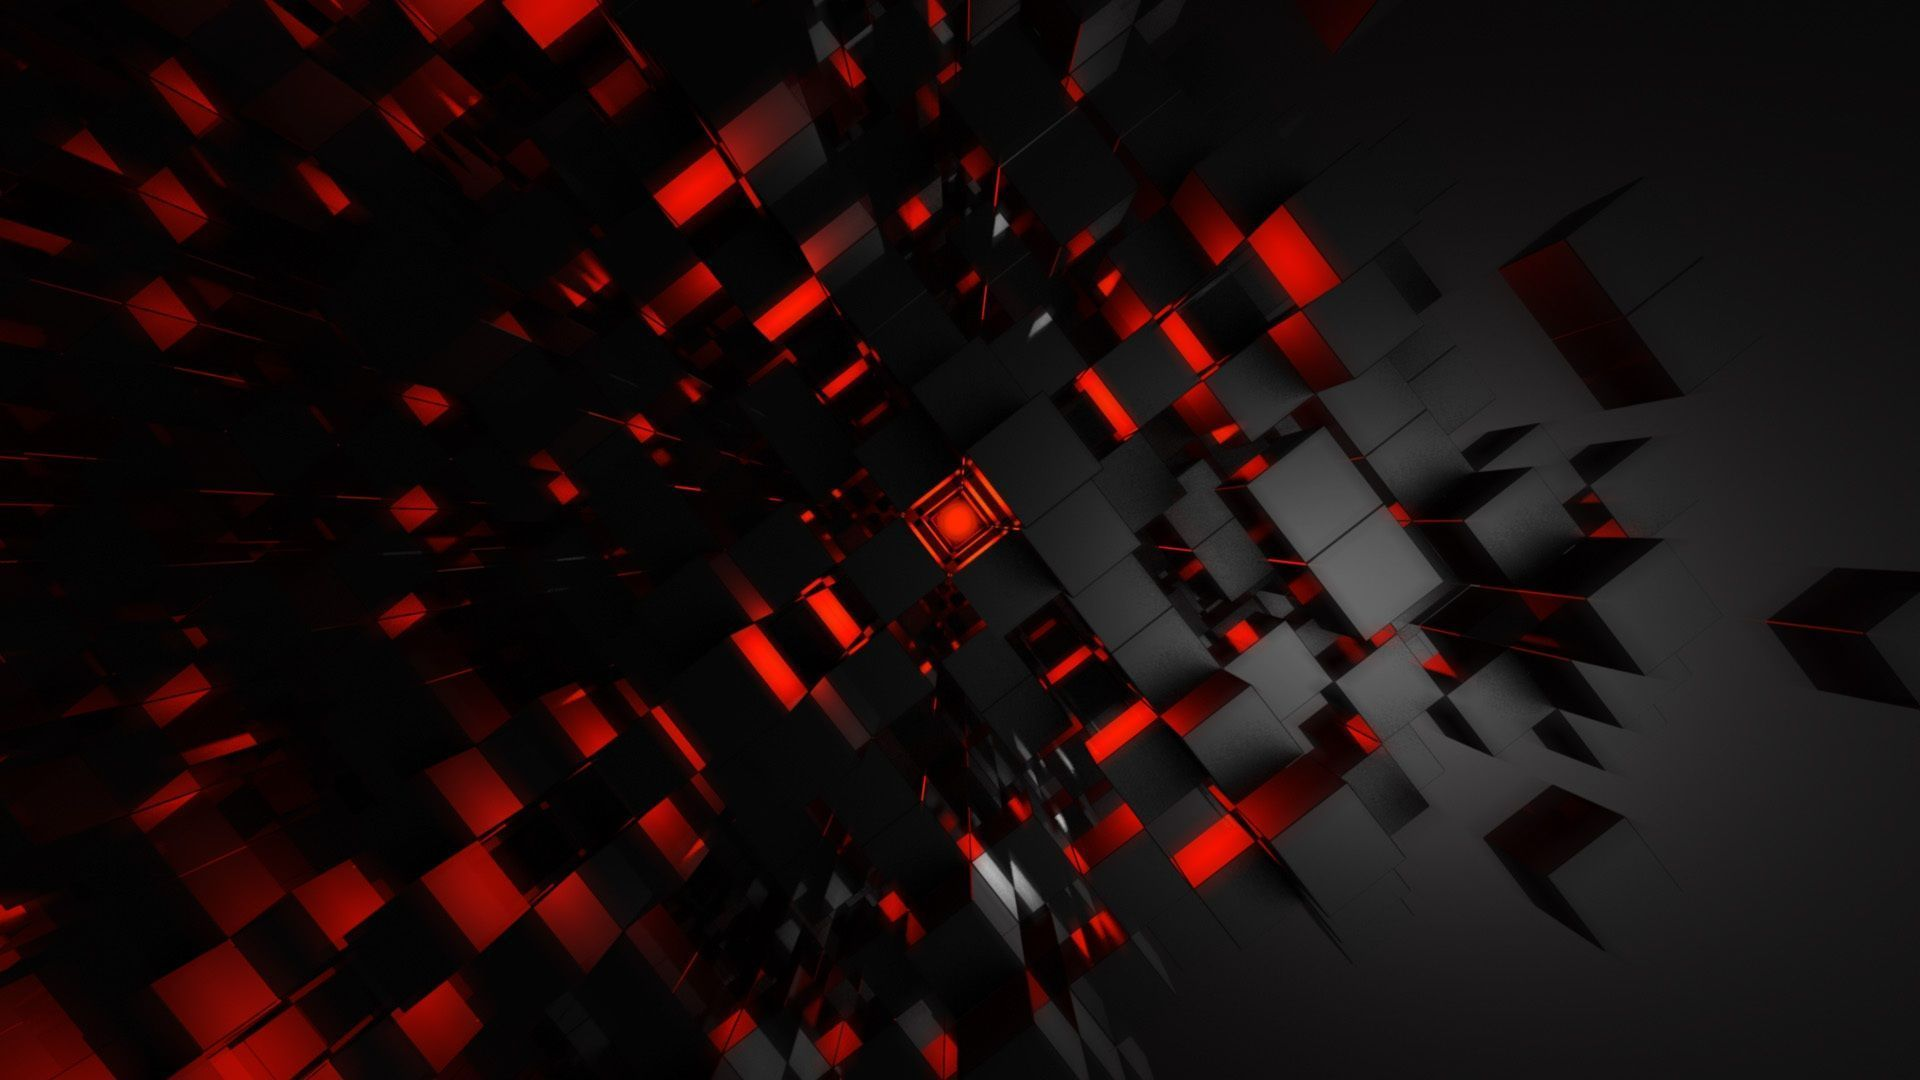 Wallpaper red and black